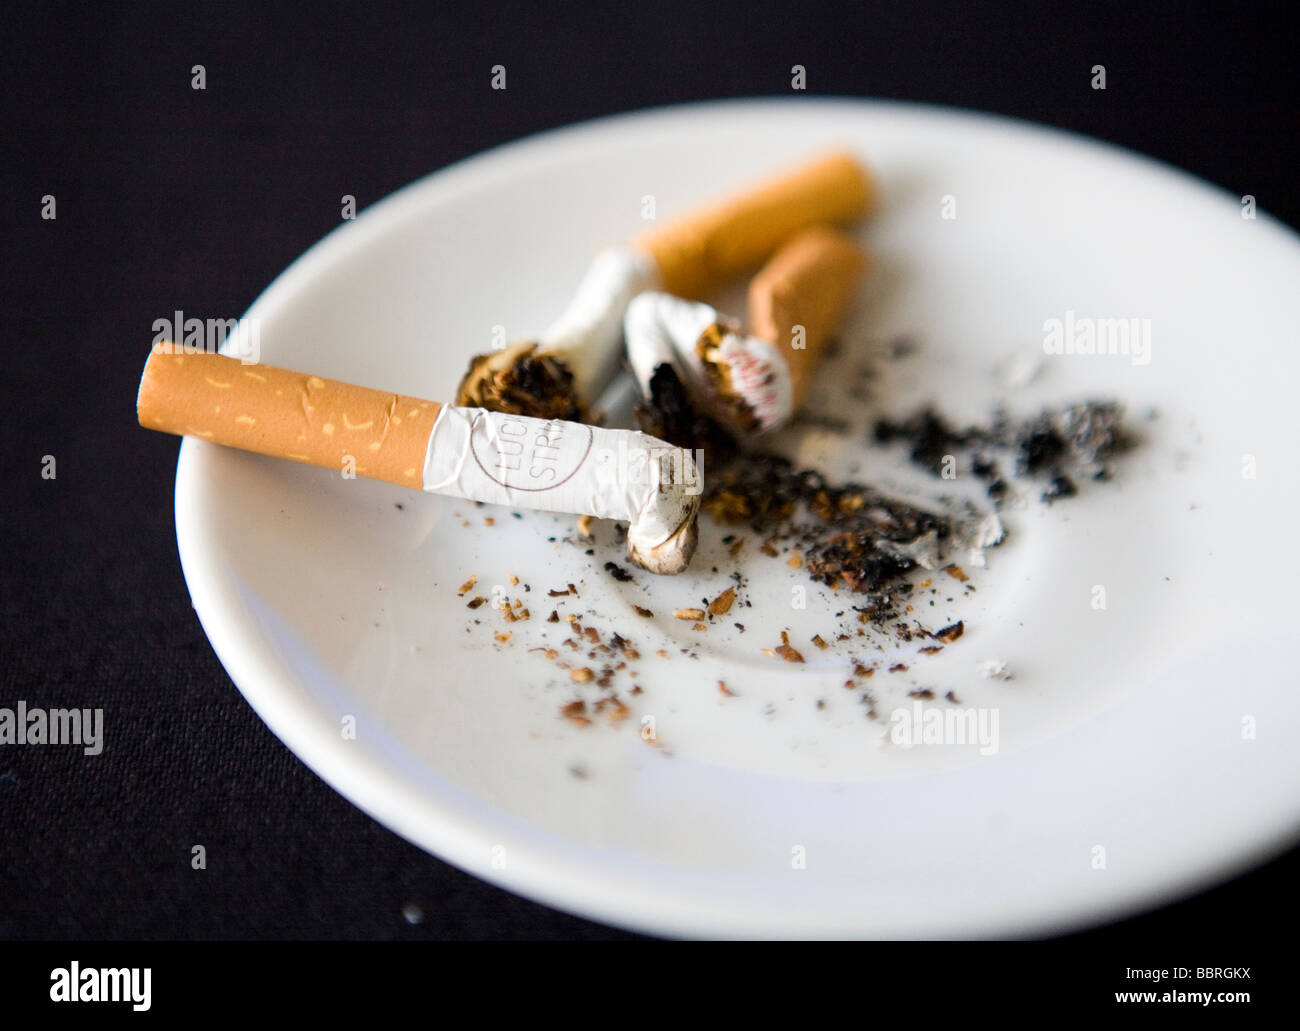 How much is a carton of cigarettes Viceroy in England